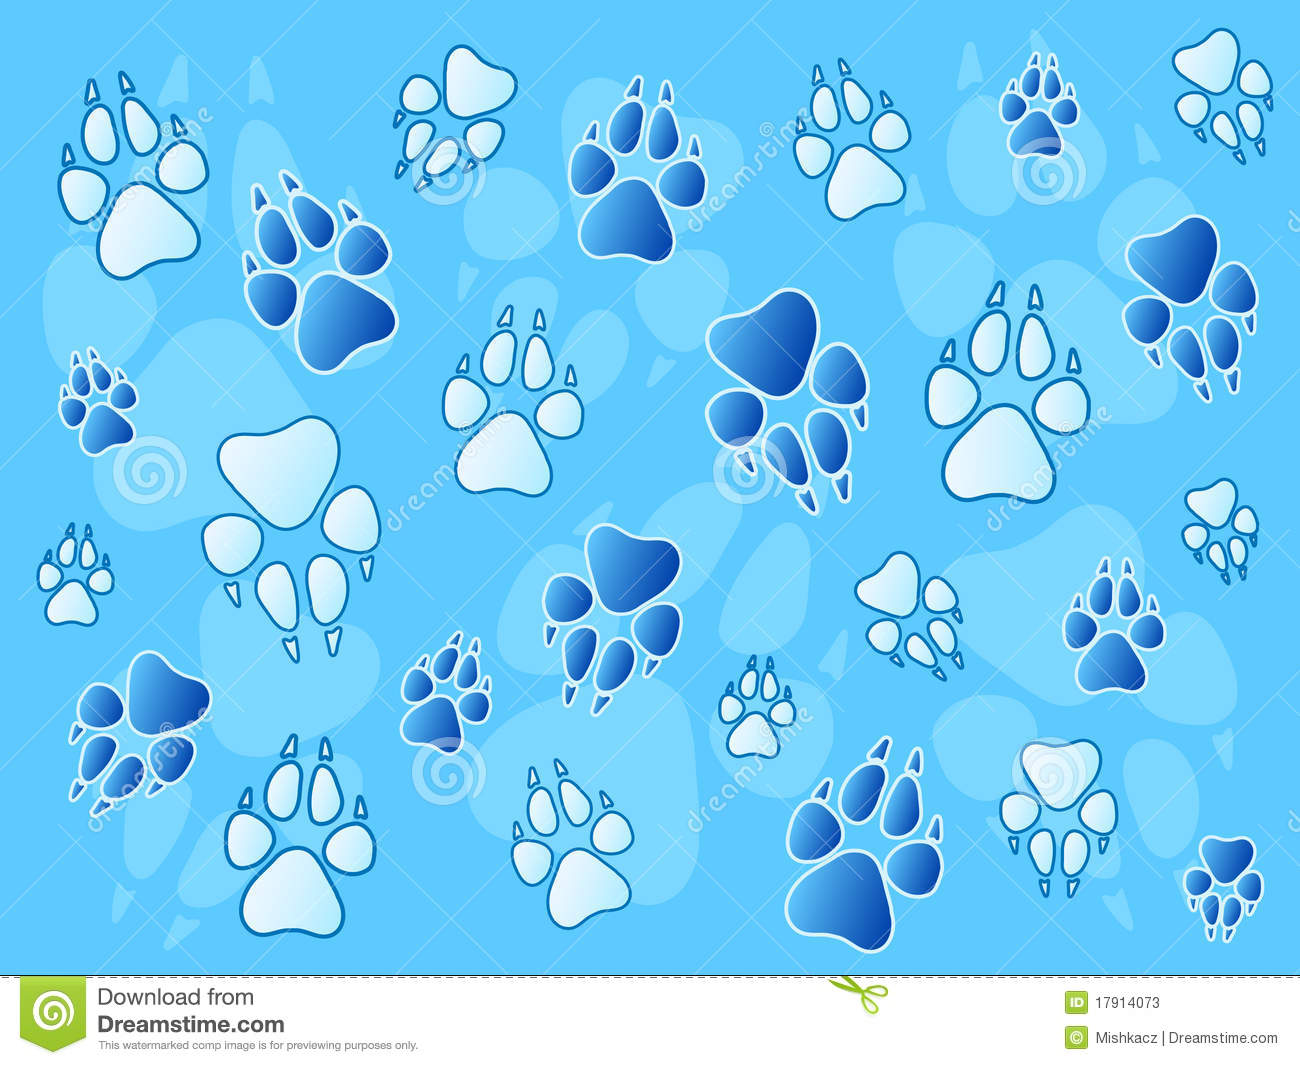 Paw Prints Background Stock Photos - Image: 17914073